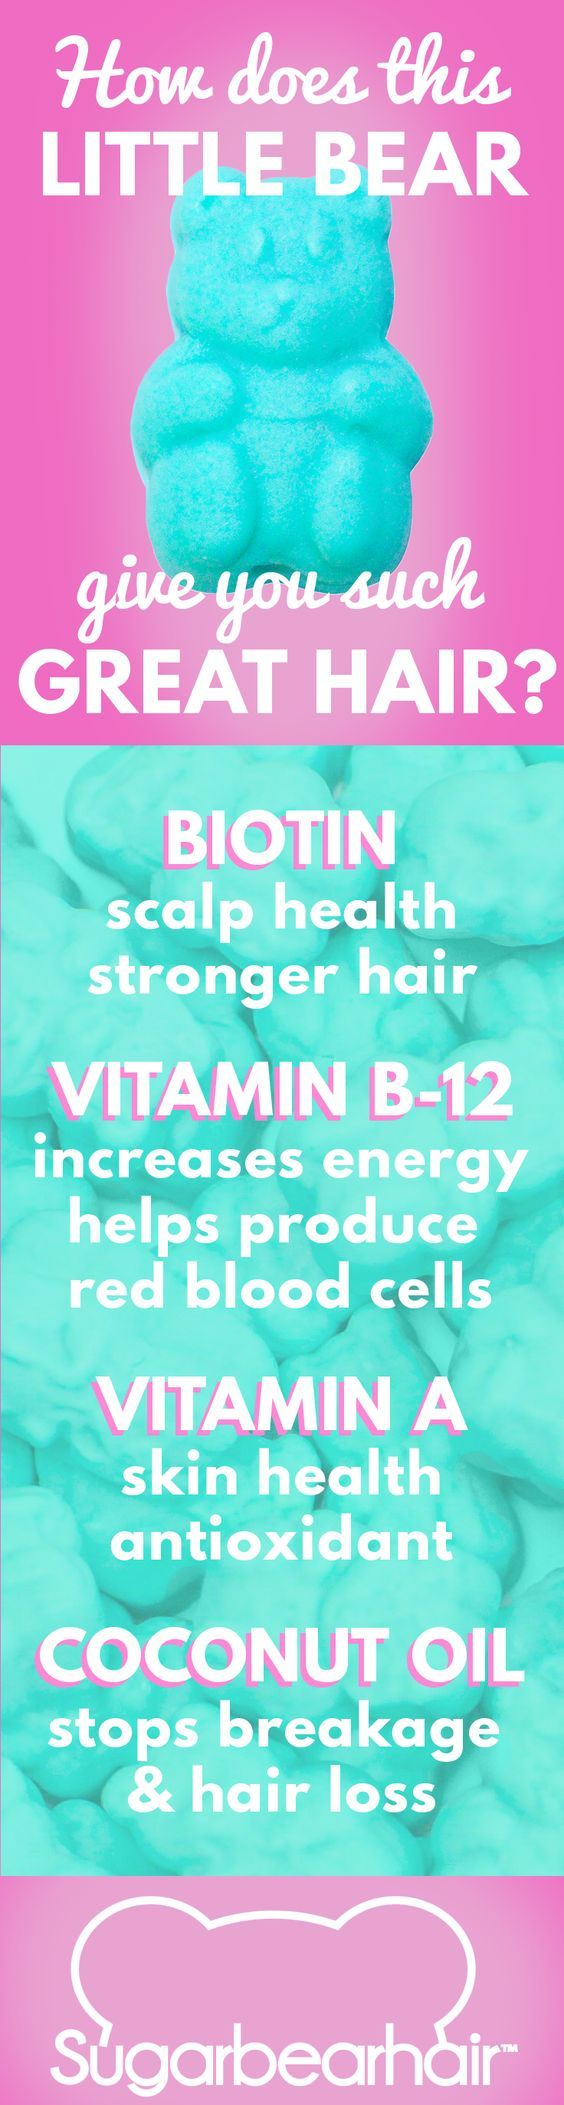 How does a tasty little gummy bear have so many nutrients essential for hair growth? Try one today and find out! 100% vegetarian and 100% delicious!